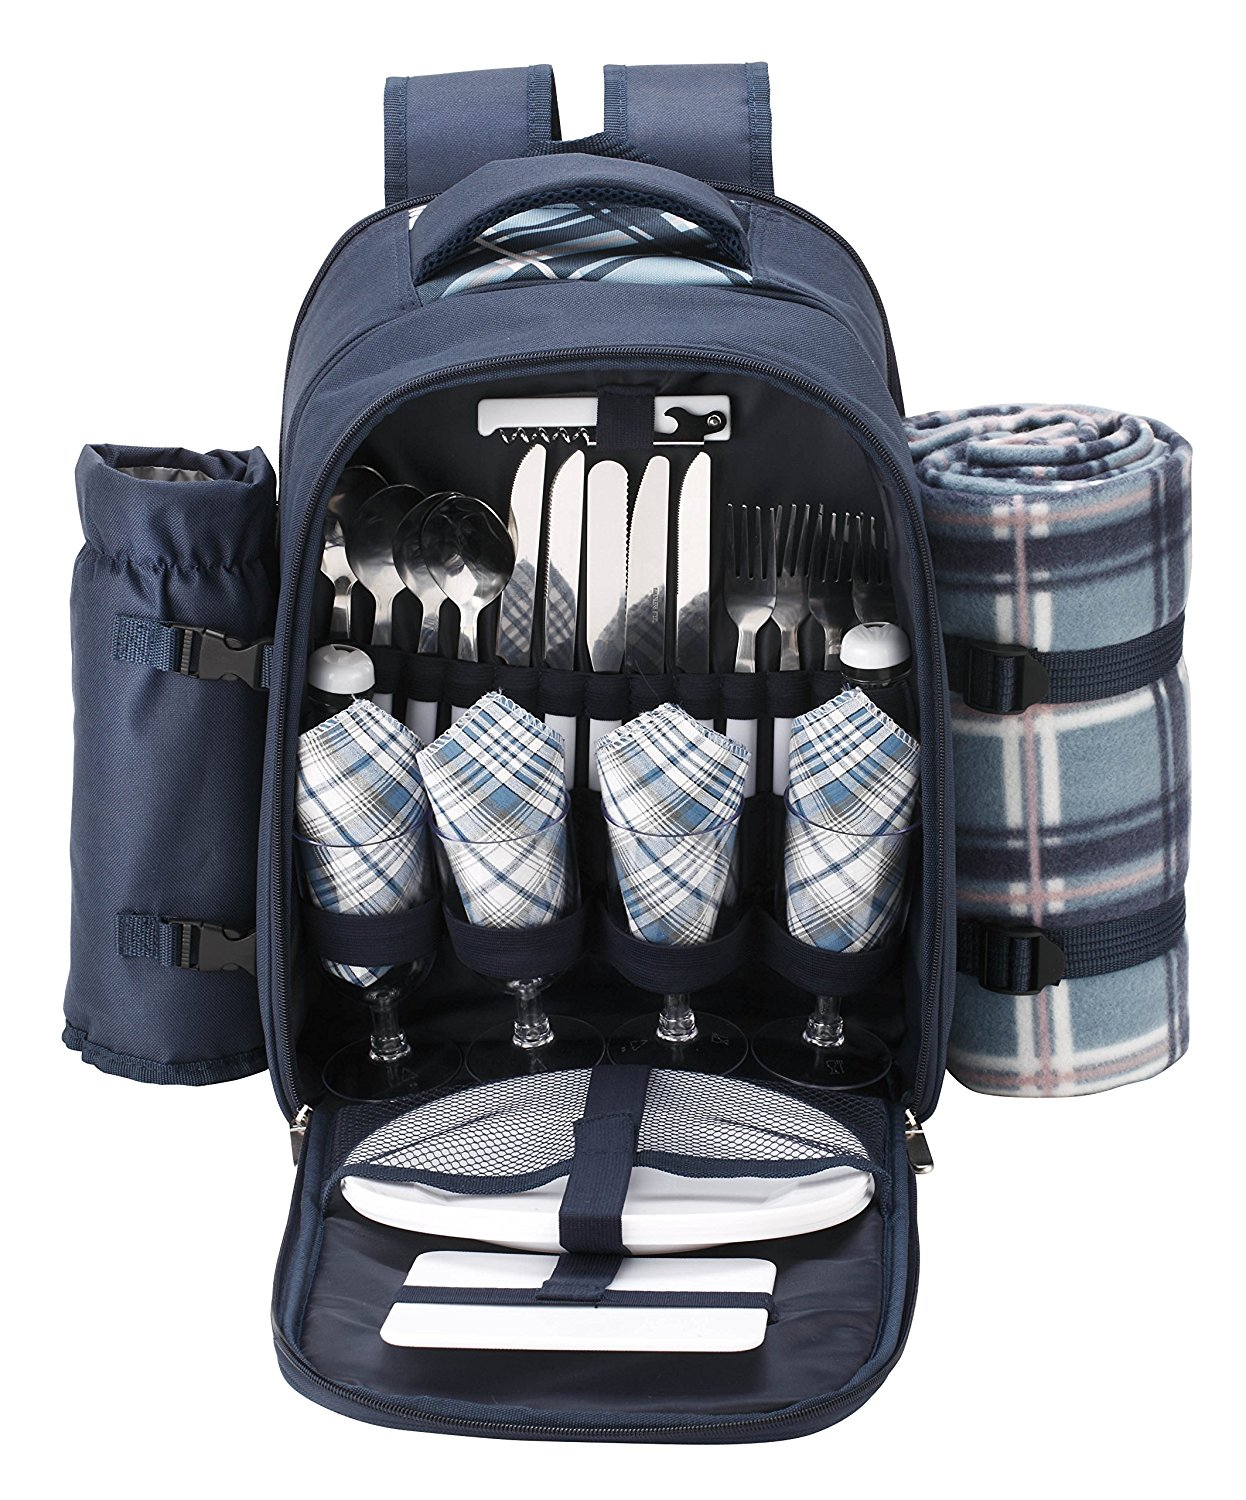 Gifts For A 50 Year Old Man Picnic Backpack